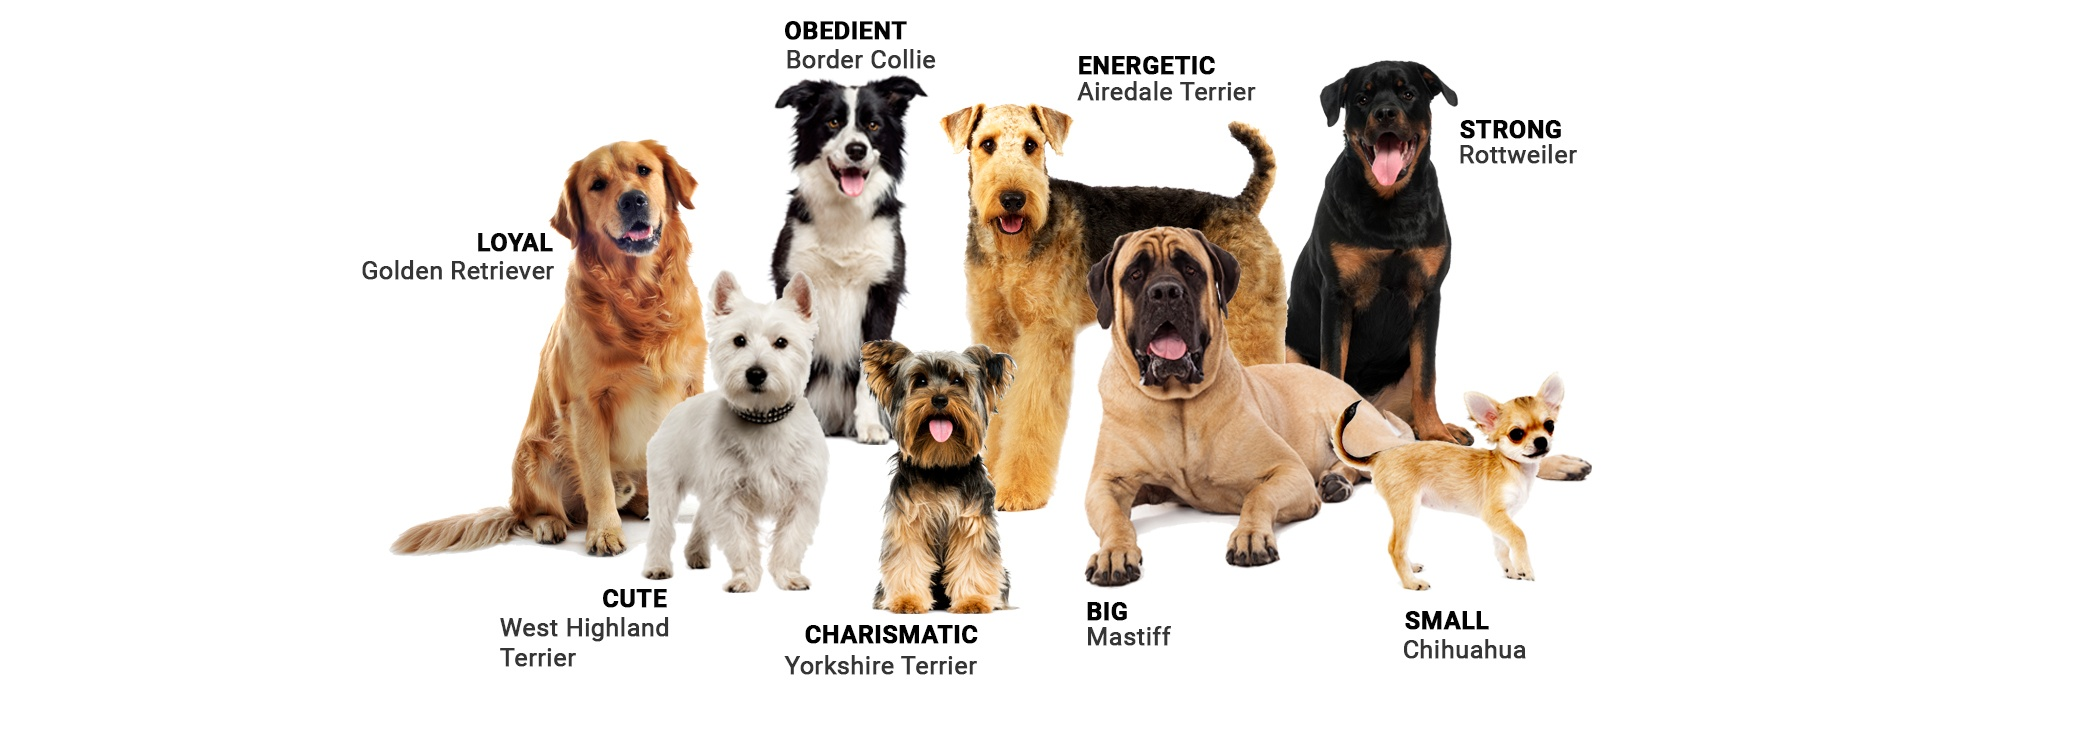 Dog Breeds - Which is Yours?